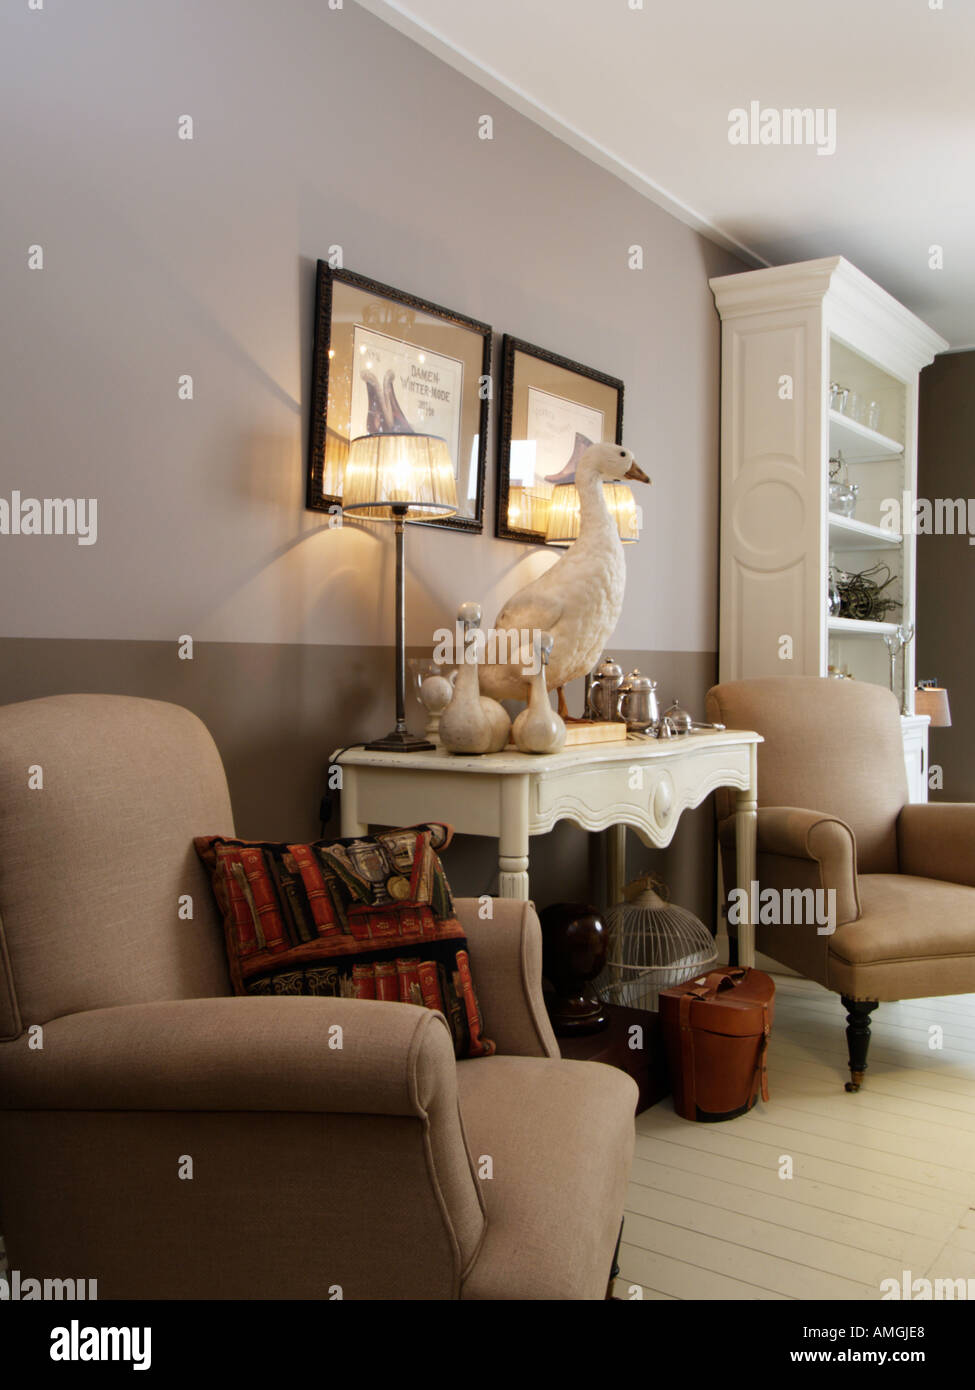 Decorated Living Room Stockfotos & Decorated Living Room Bilder - Alamy